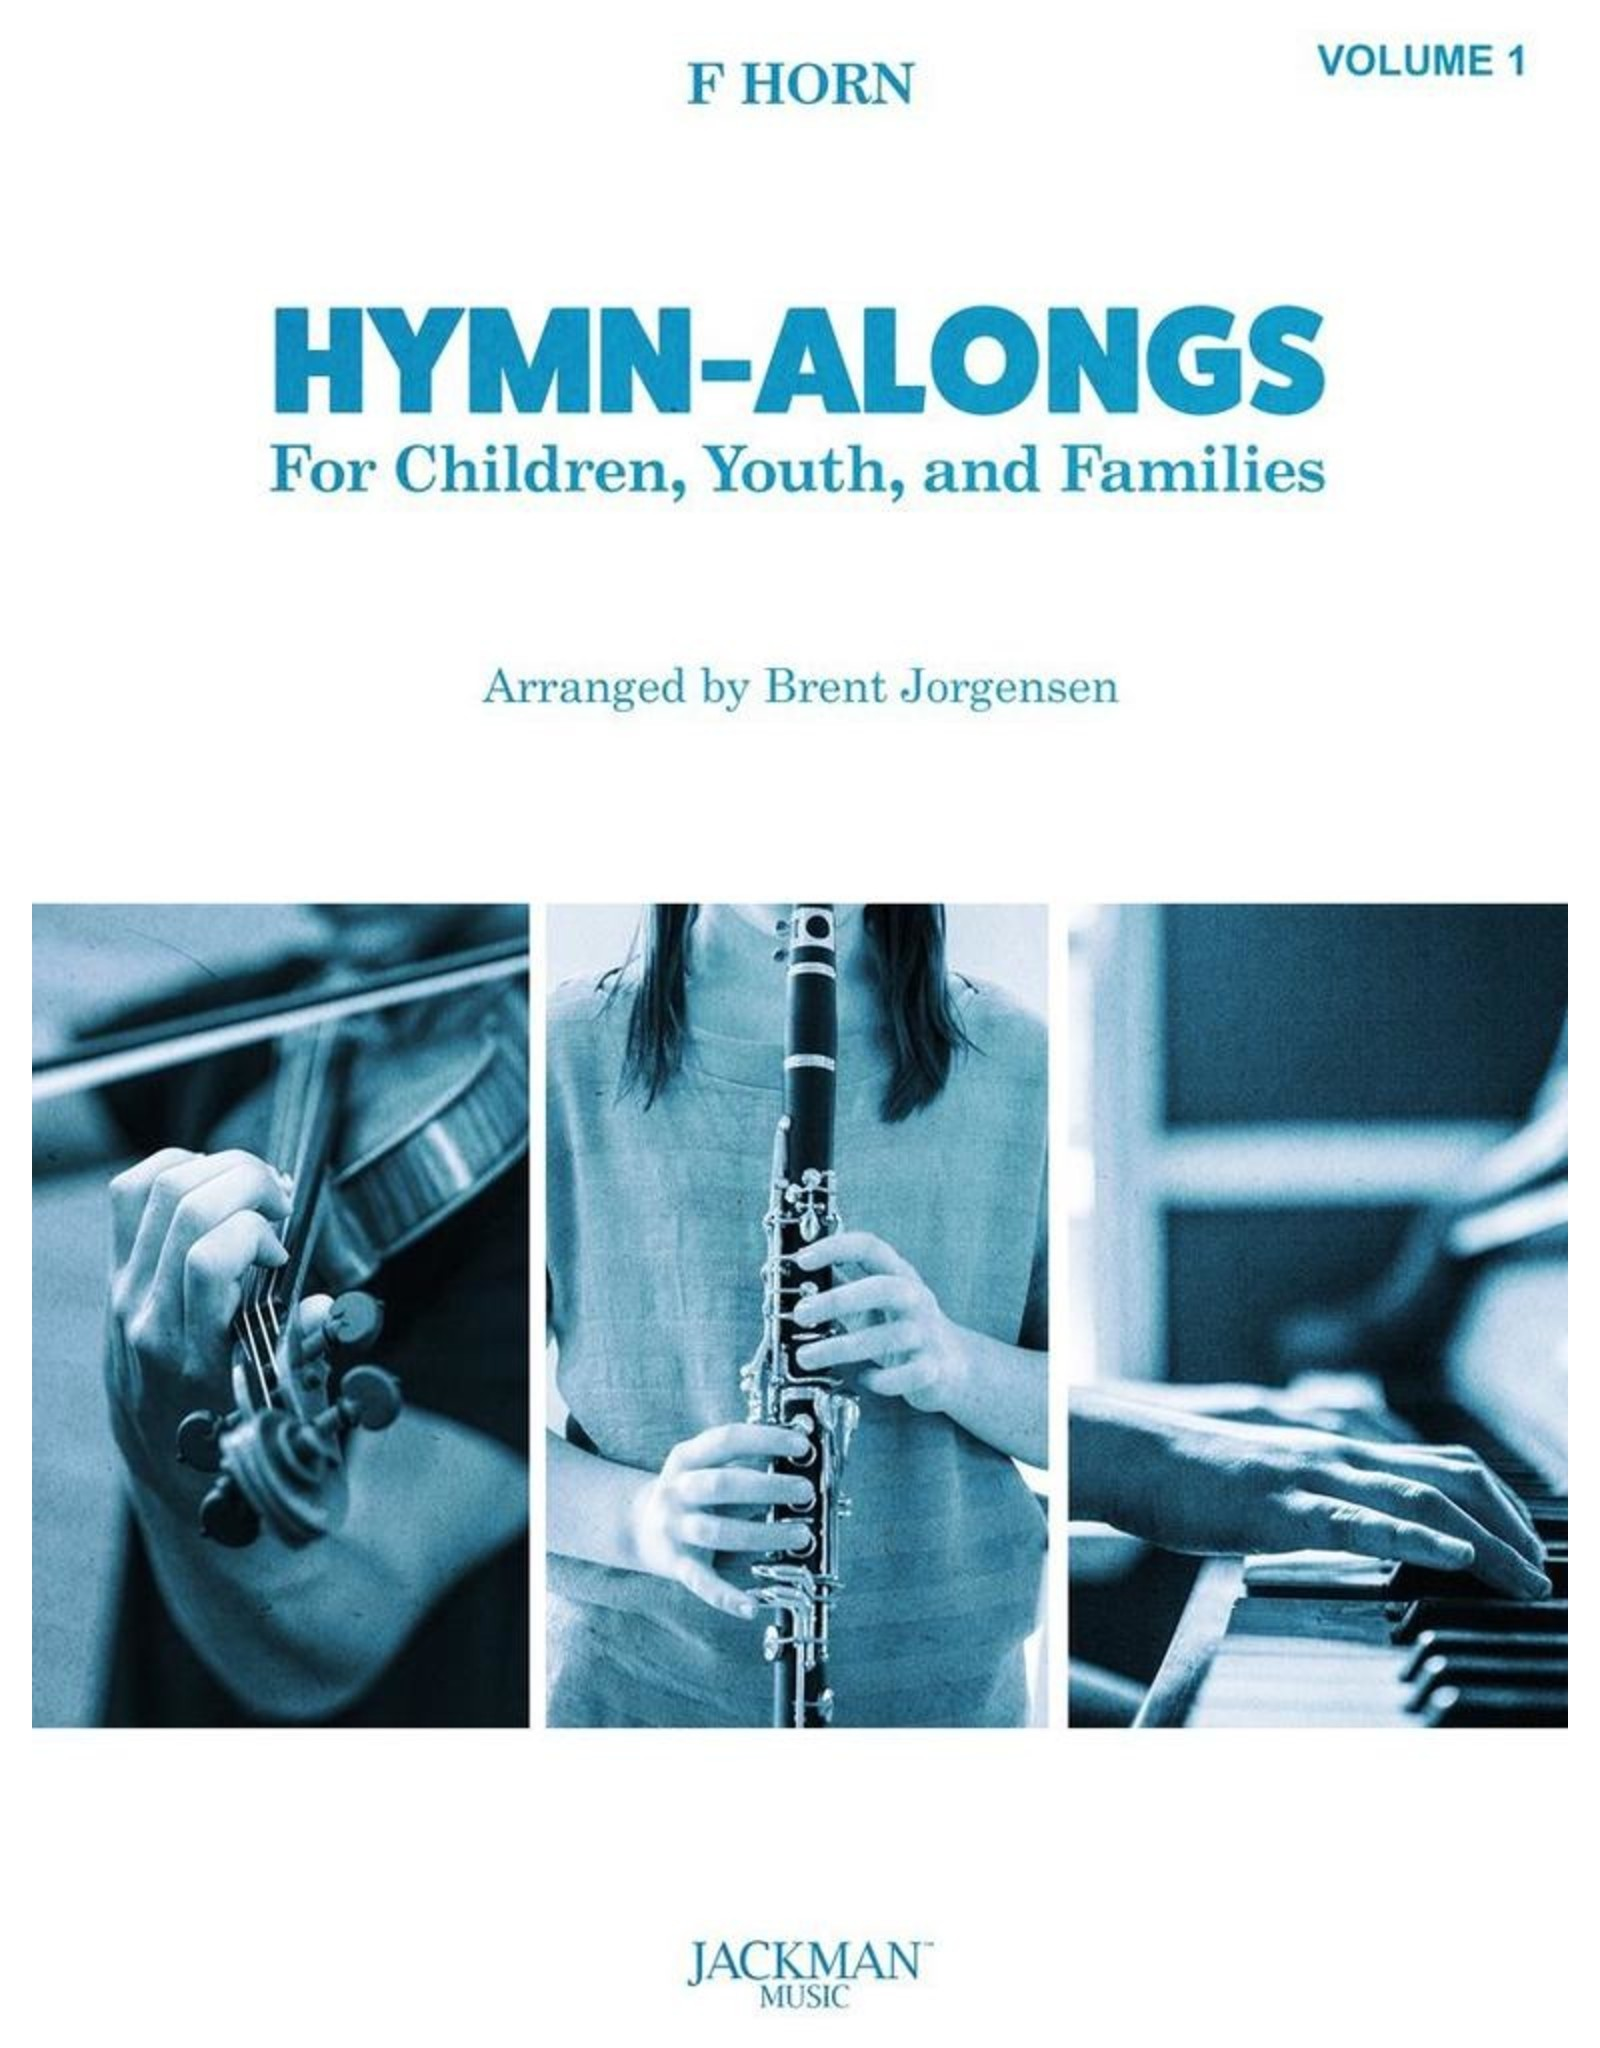 Jackman Music Hymn-Alongs Vol. 1 - arr. Brent Jorgensen - French Horn